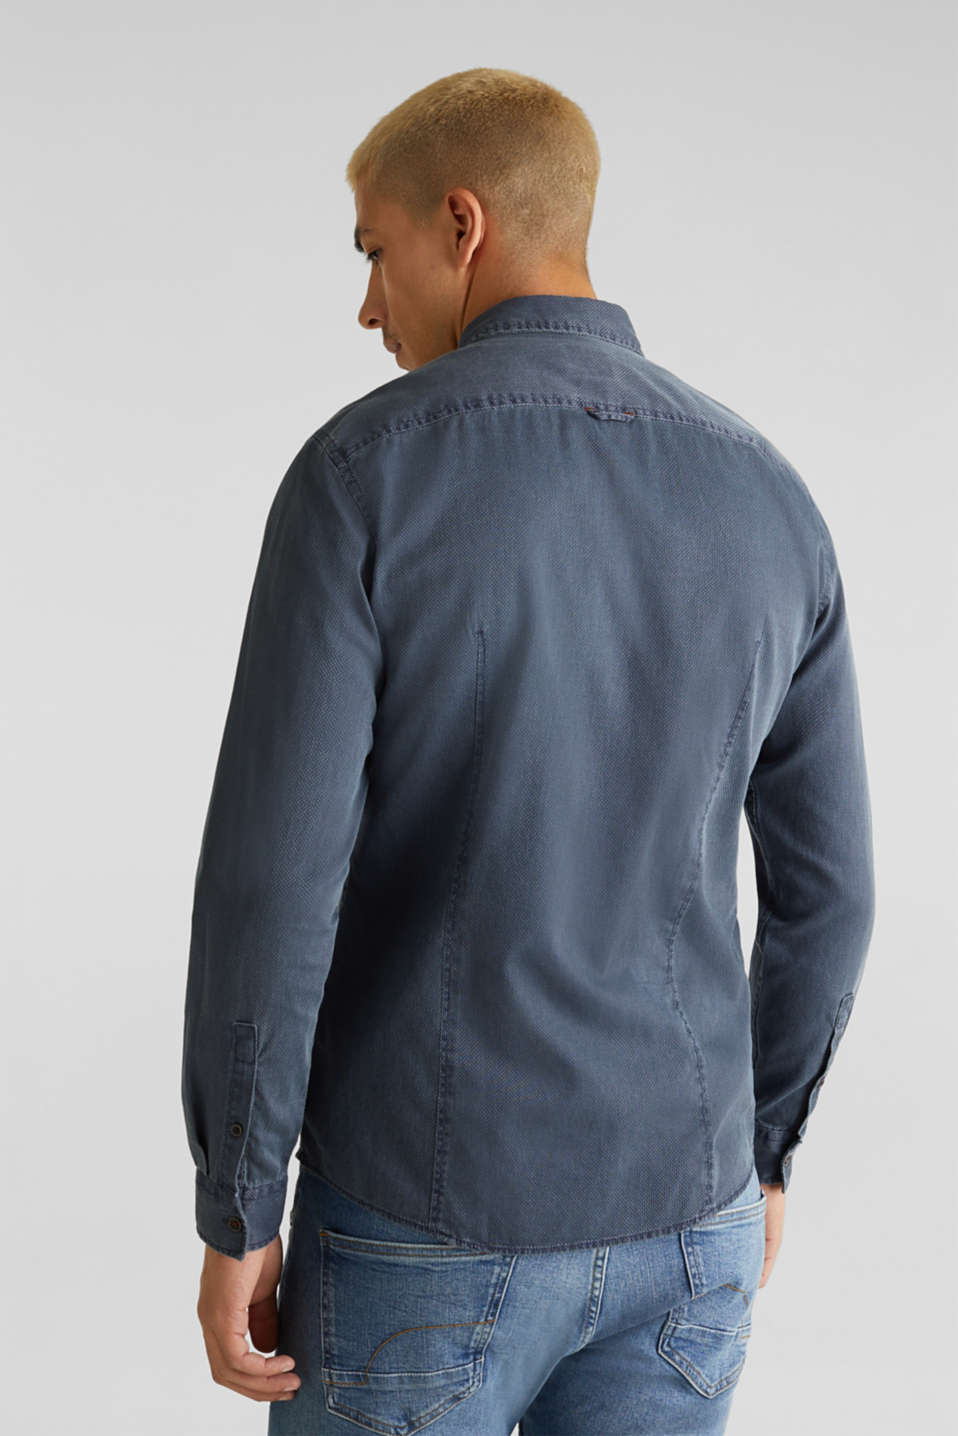 Shirt with a checked texture, 100% cotton, DARK BLUE 5, detail image number 3